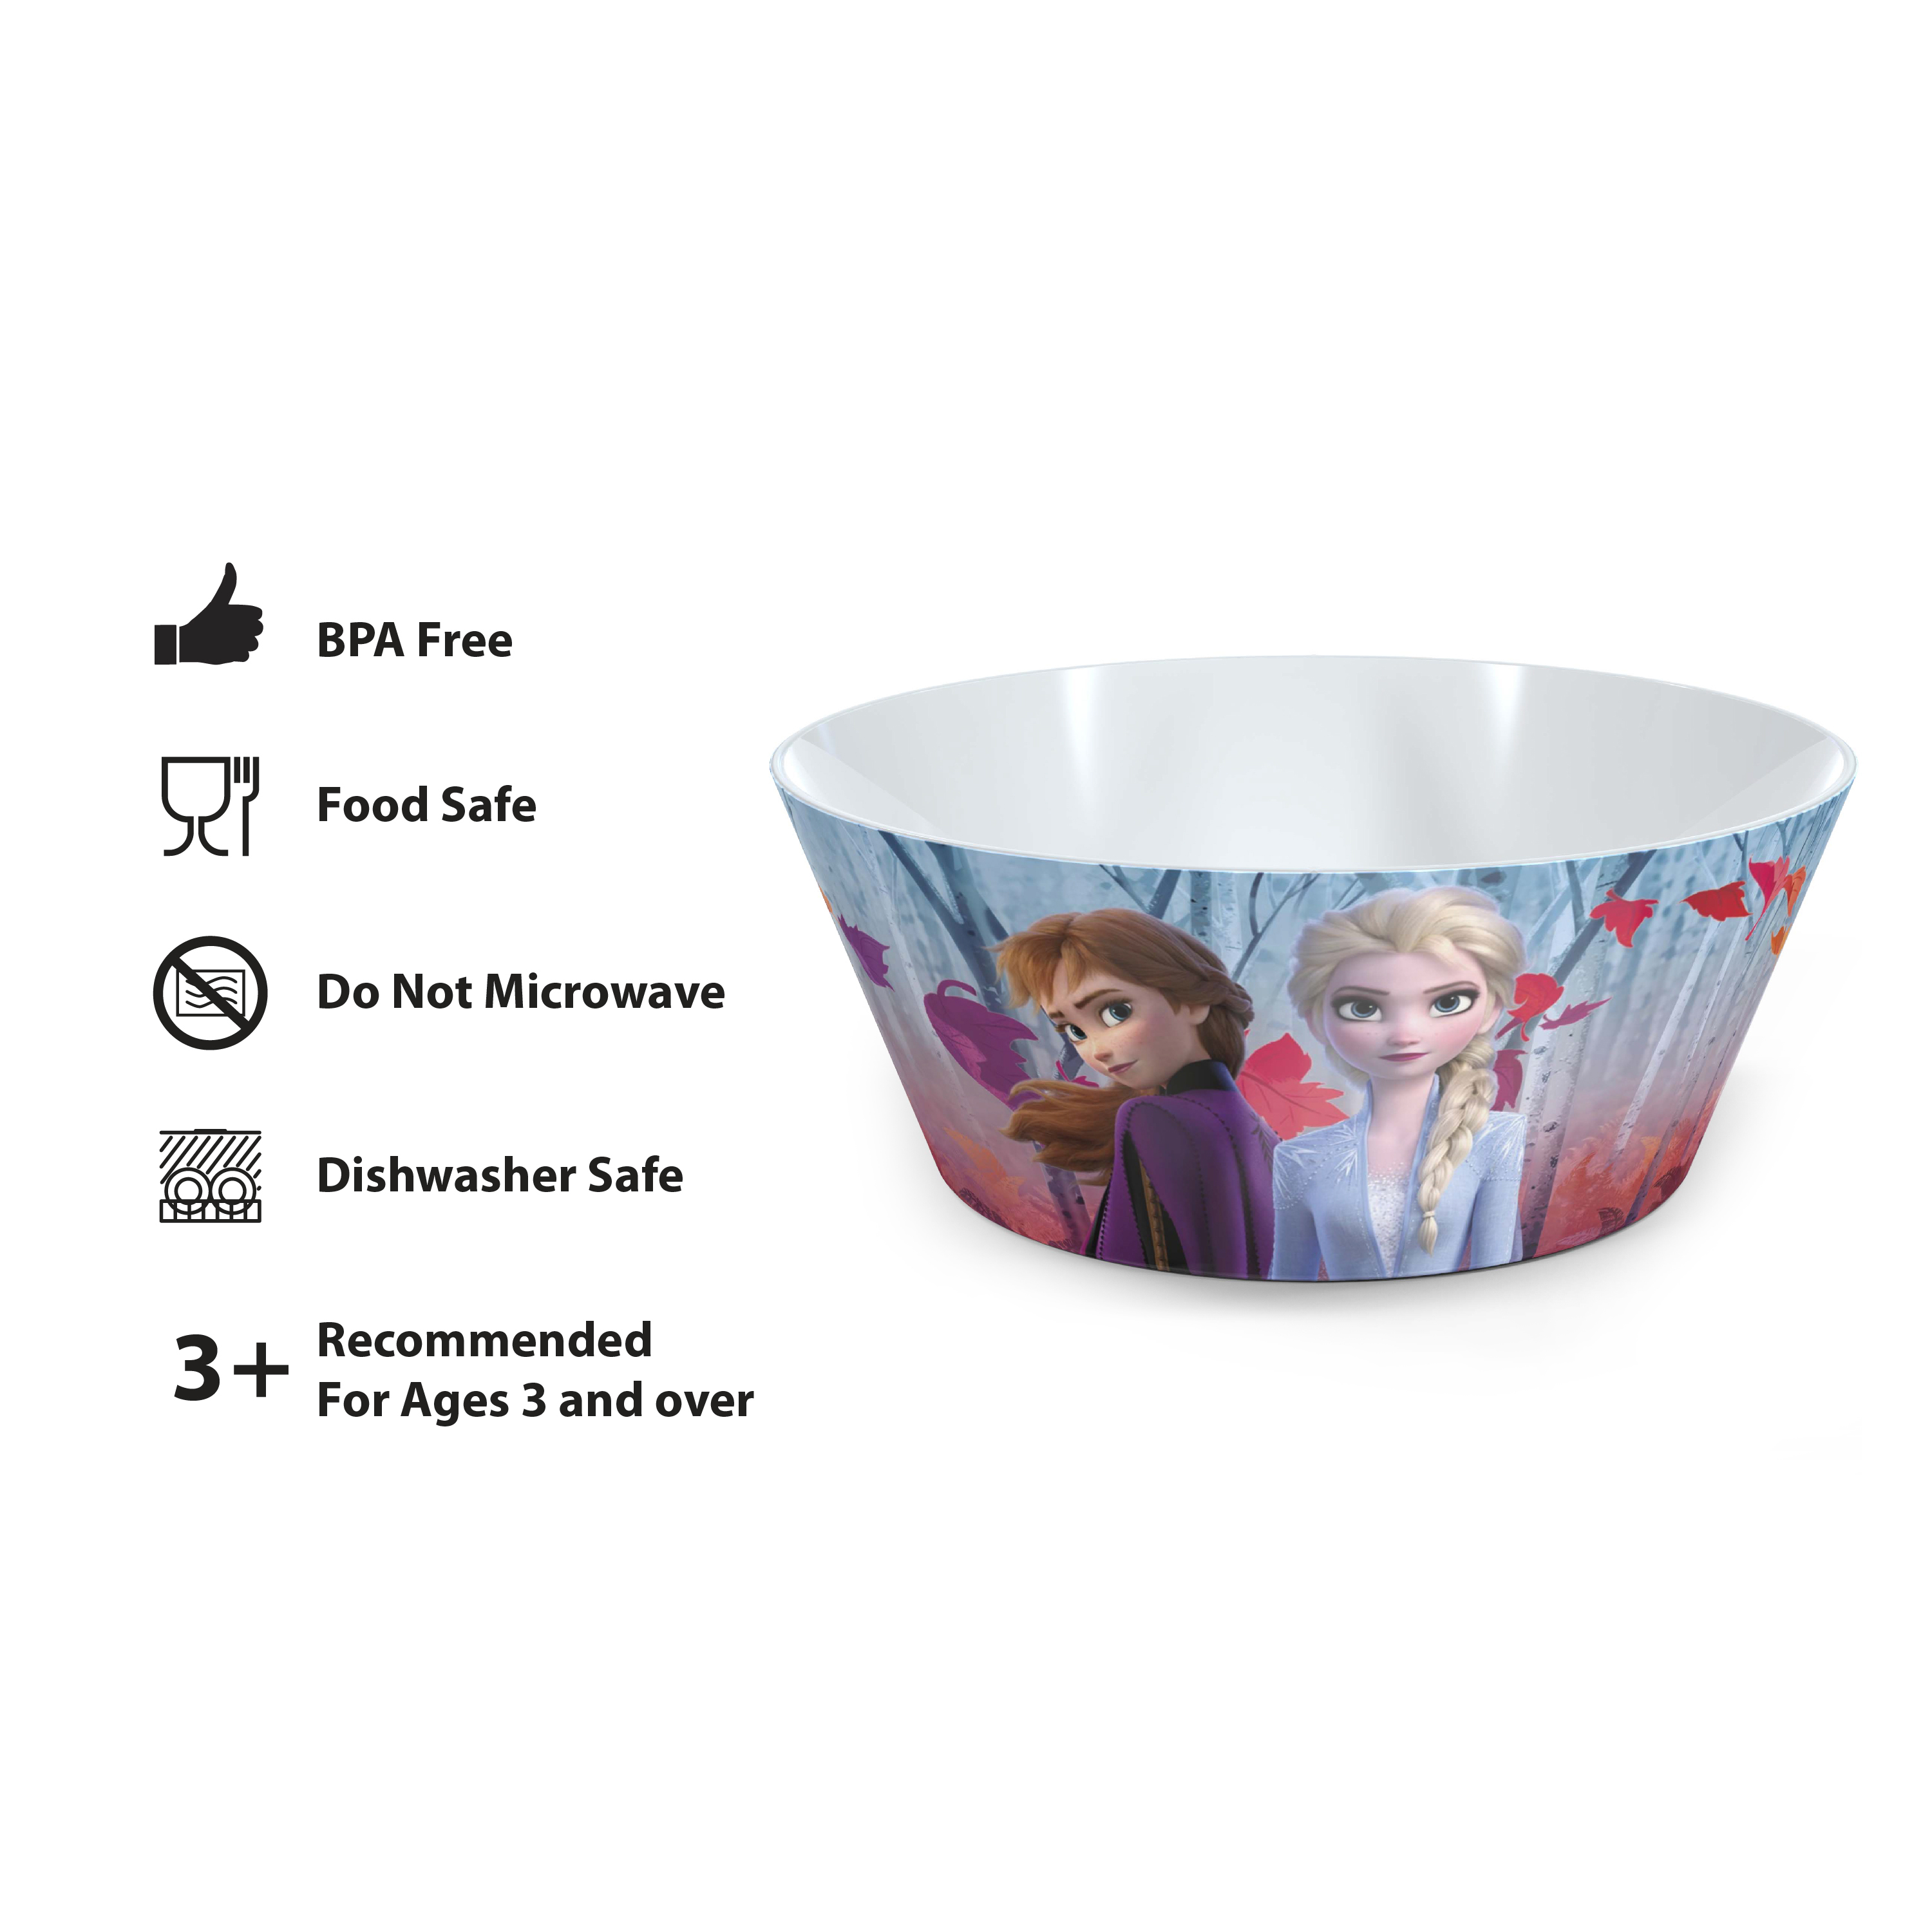 Disney Frozen 2 Movie Dinnerware Set, Anna and Elsa, 5-piece set slideshow image 2